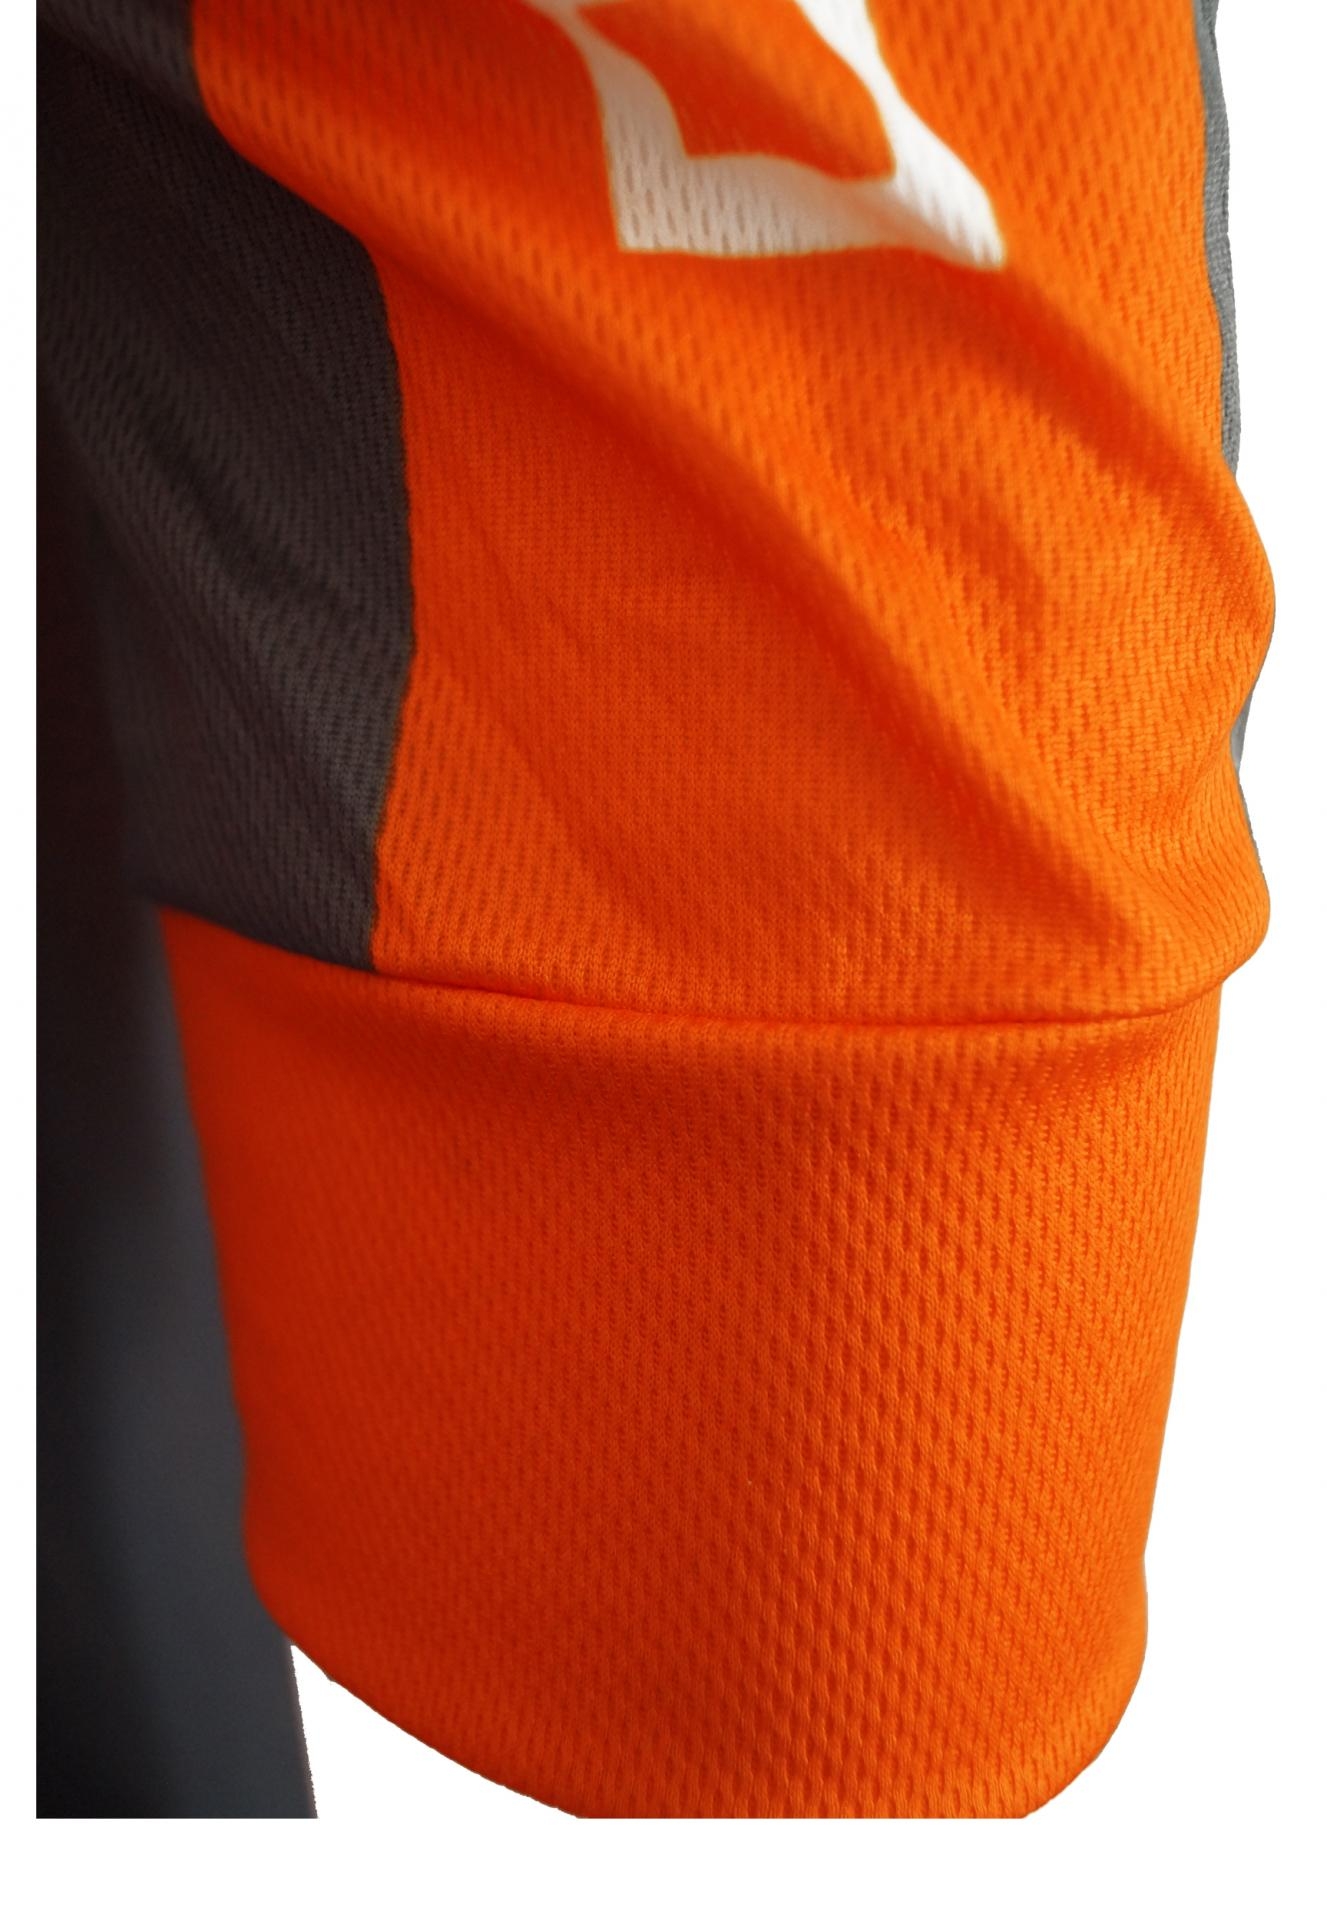 Maillot orange manche